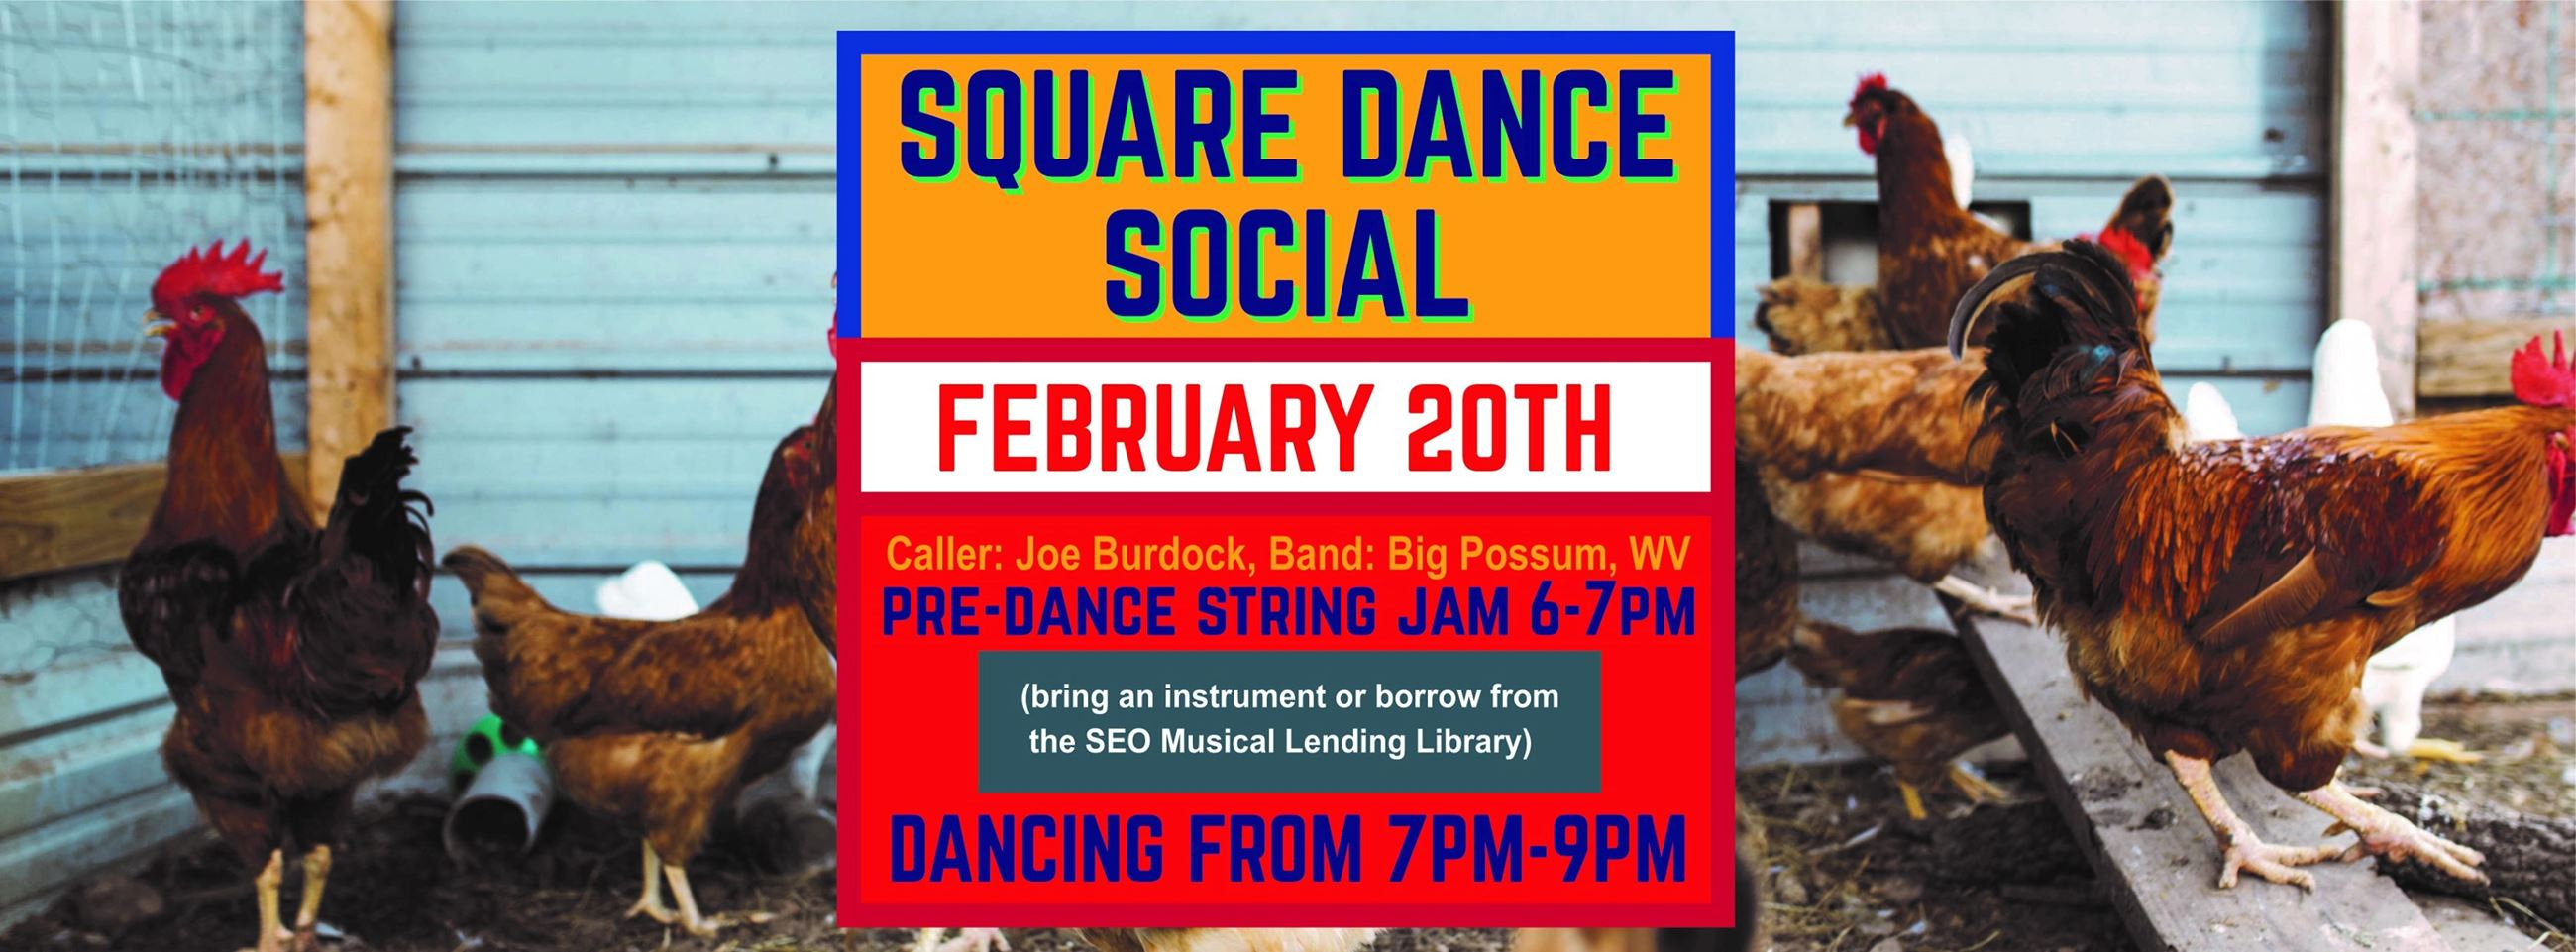 Square Dance Banner FEB 2020